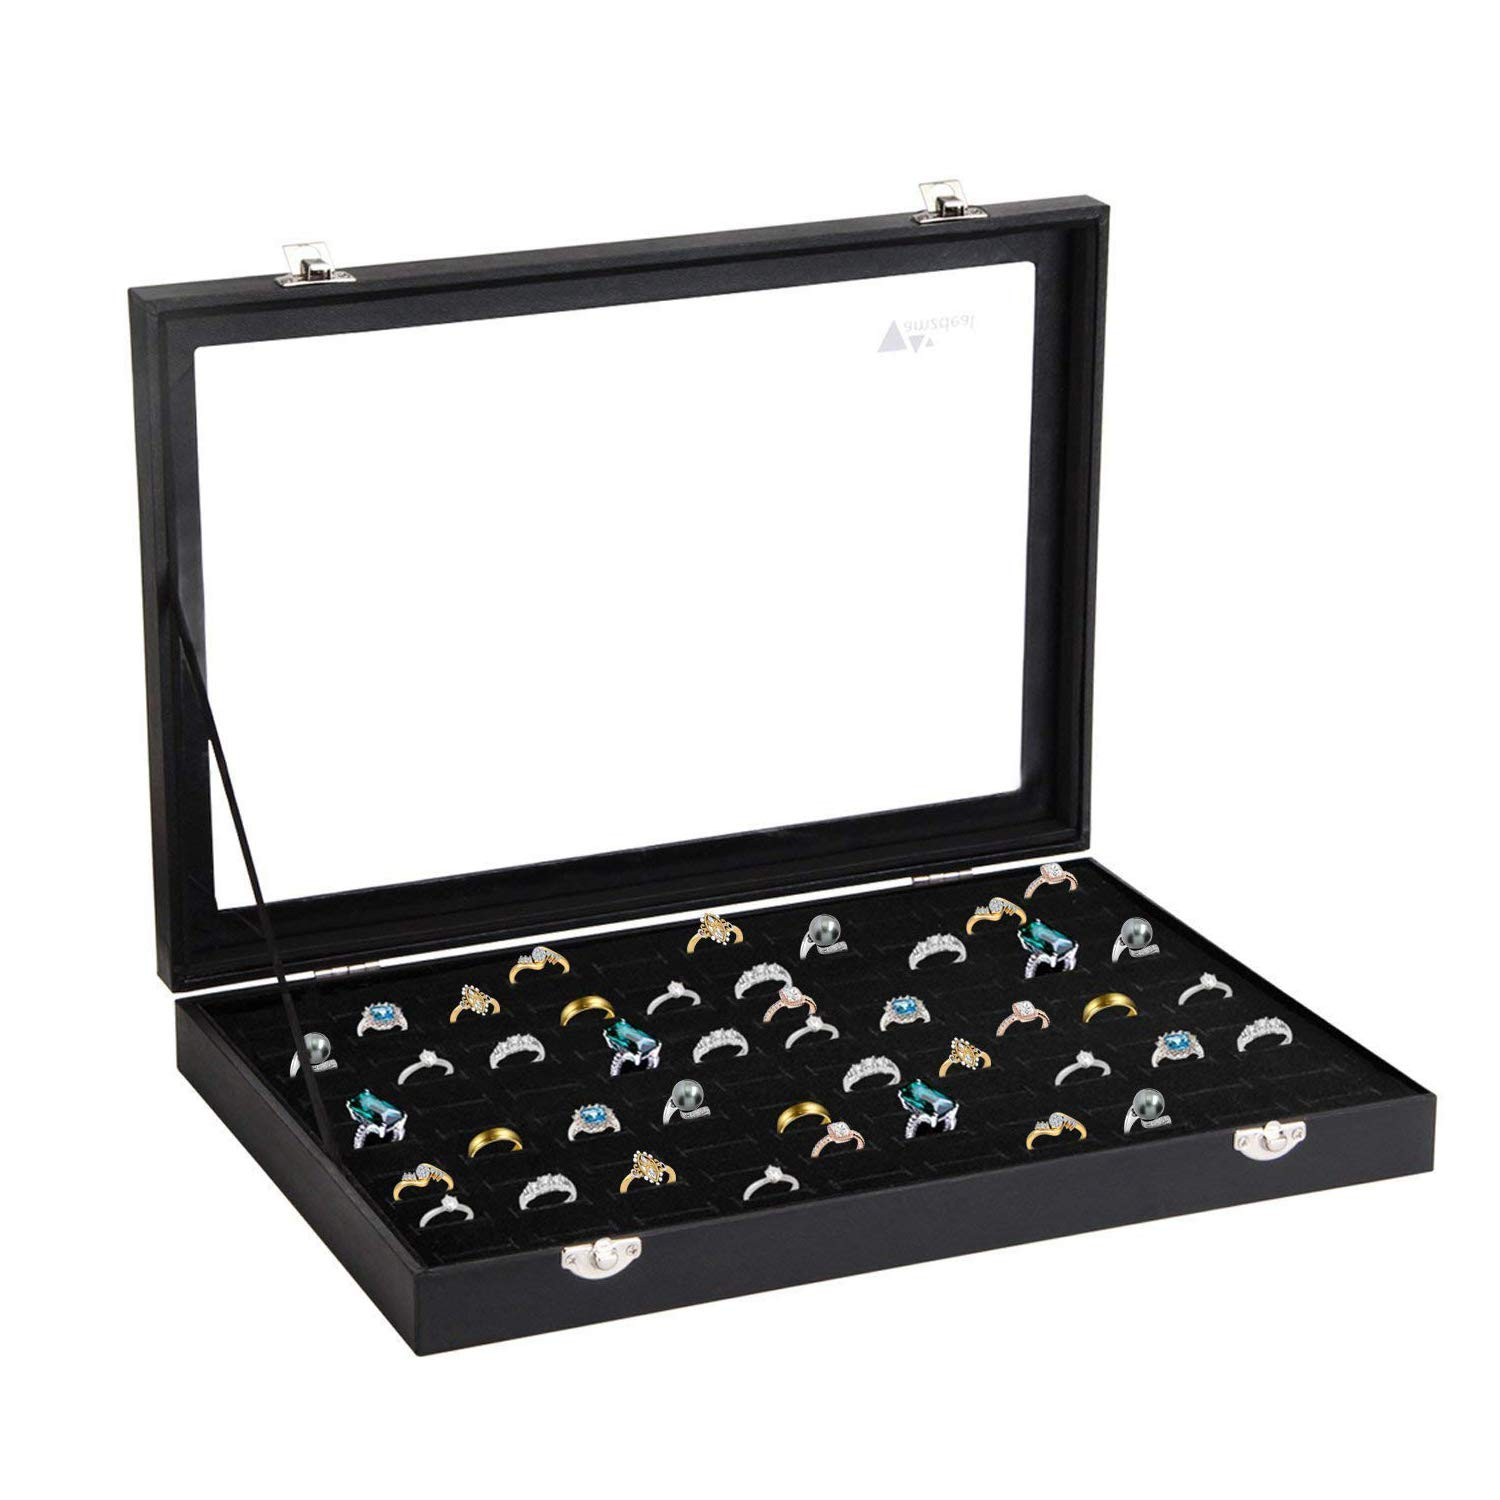 amzdeal Ring Box, Ring Case, 100 Slots Jewelry Ring Display Case with Glass Top, Ring Organizer, Ring Holder Jewelry Storage Tray, Ideal Gift for Women Men, Black